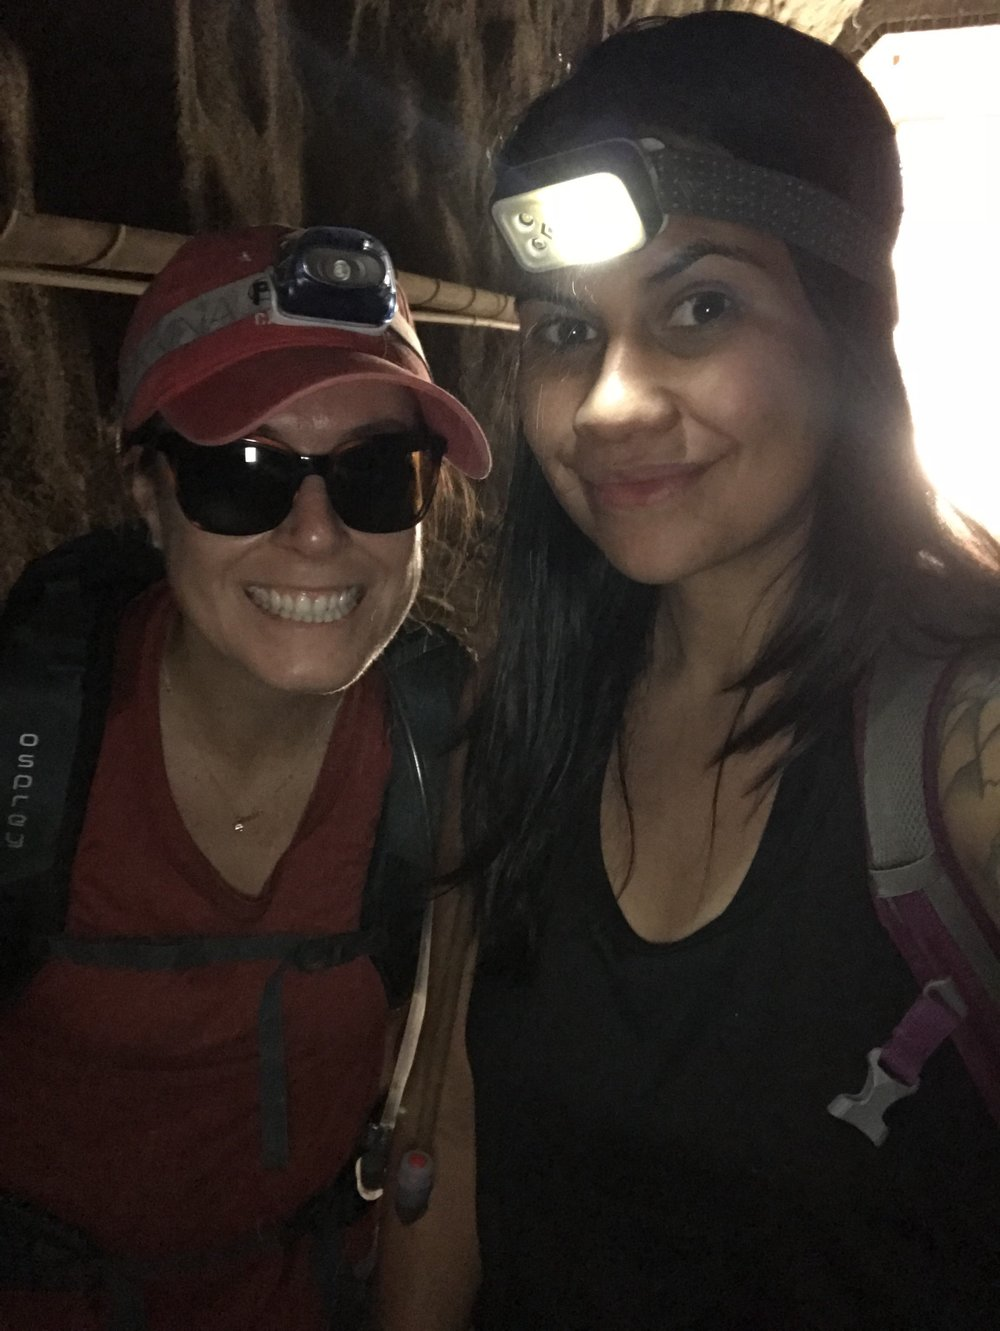 Goat Canyon Trestles. Hiking through one of the long tunnels, headlamps (and apparently sunglasses) were needed